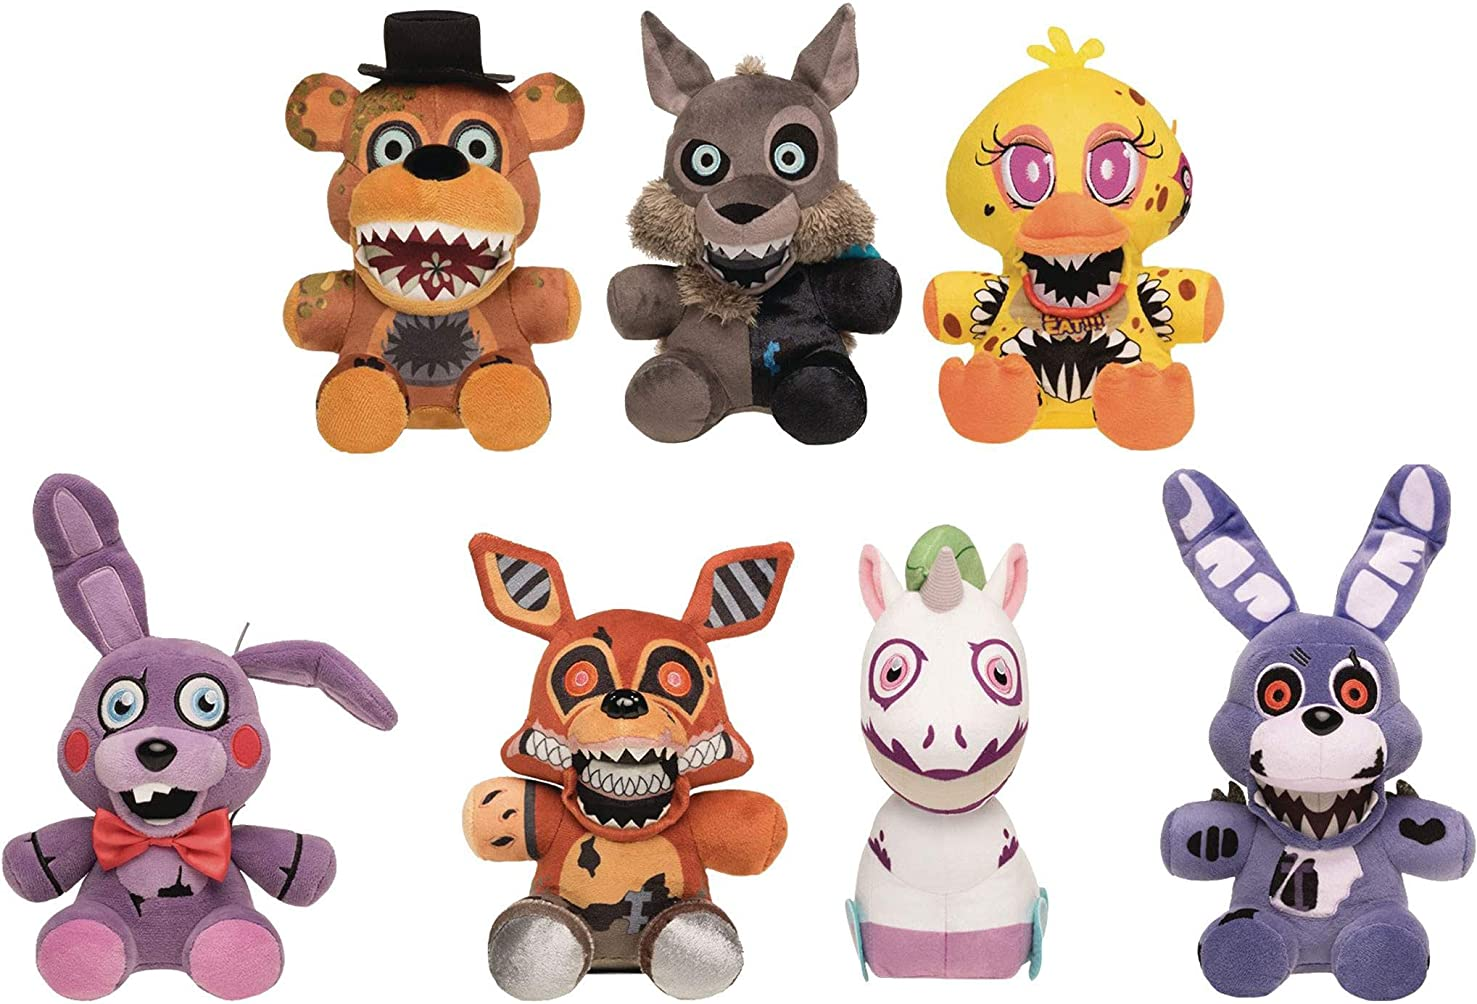 Funko Five Nights at Freddy's Twisted Ones Collectible Plush Figures, 8-inch (Set of 7)